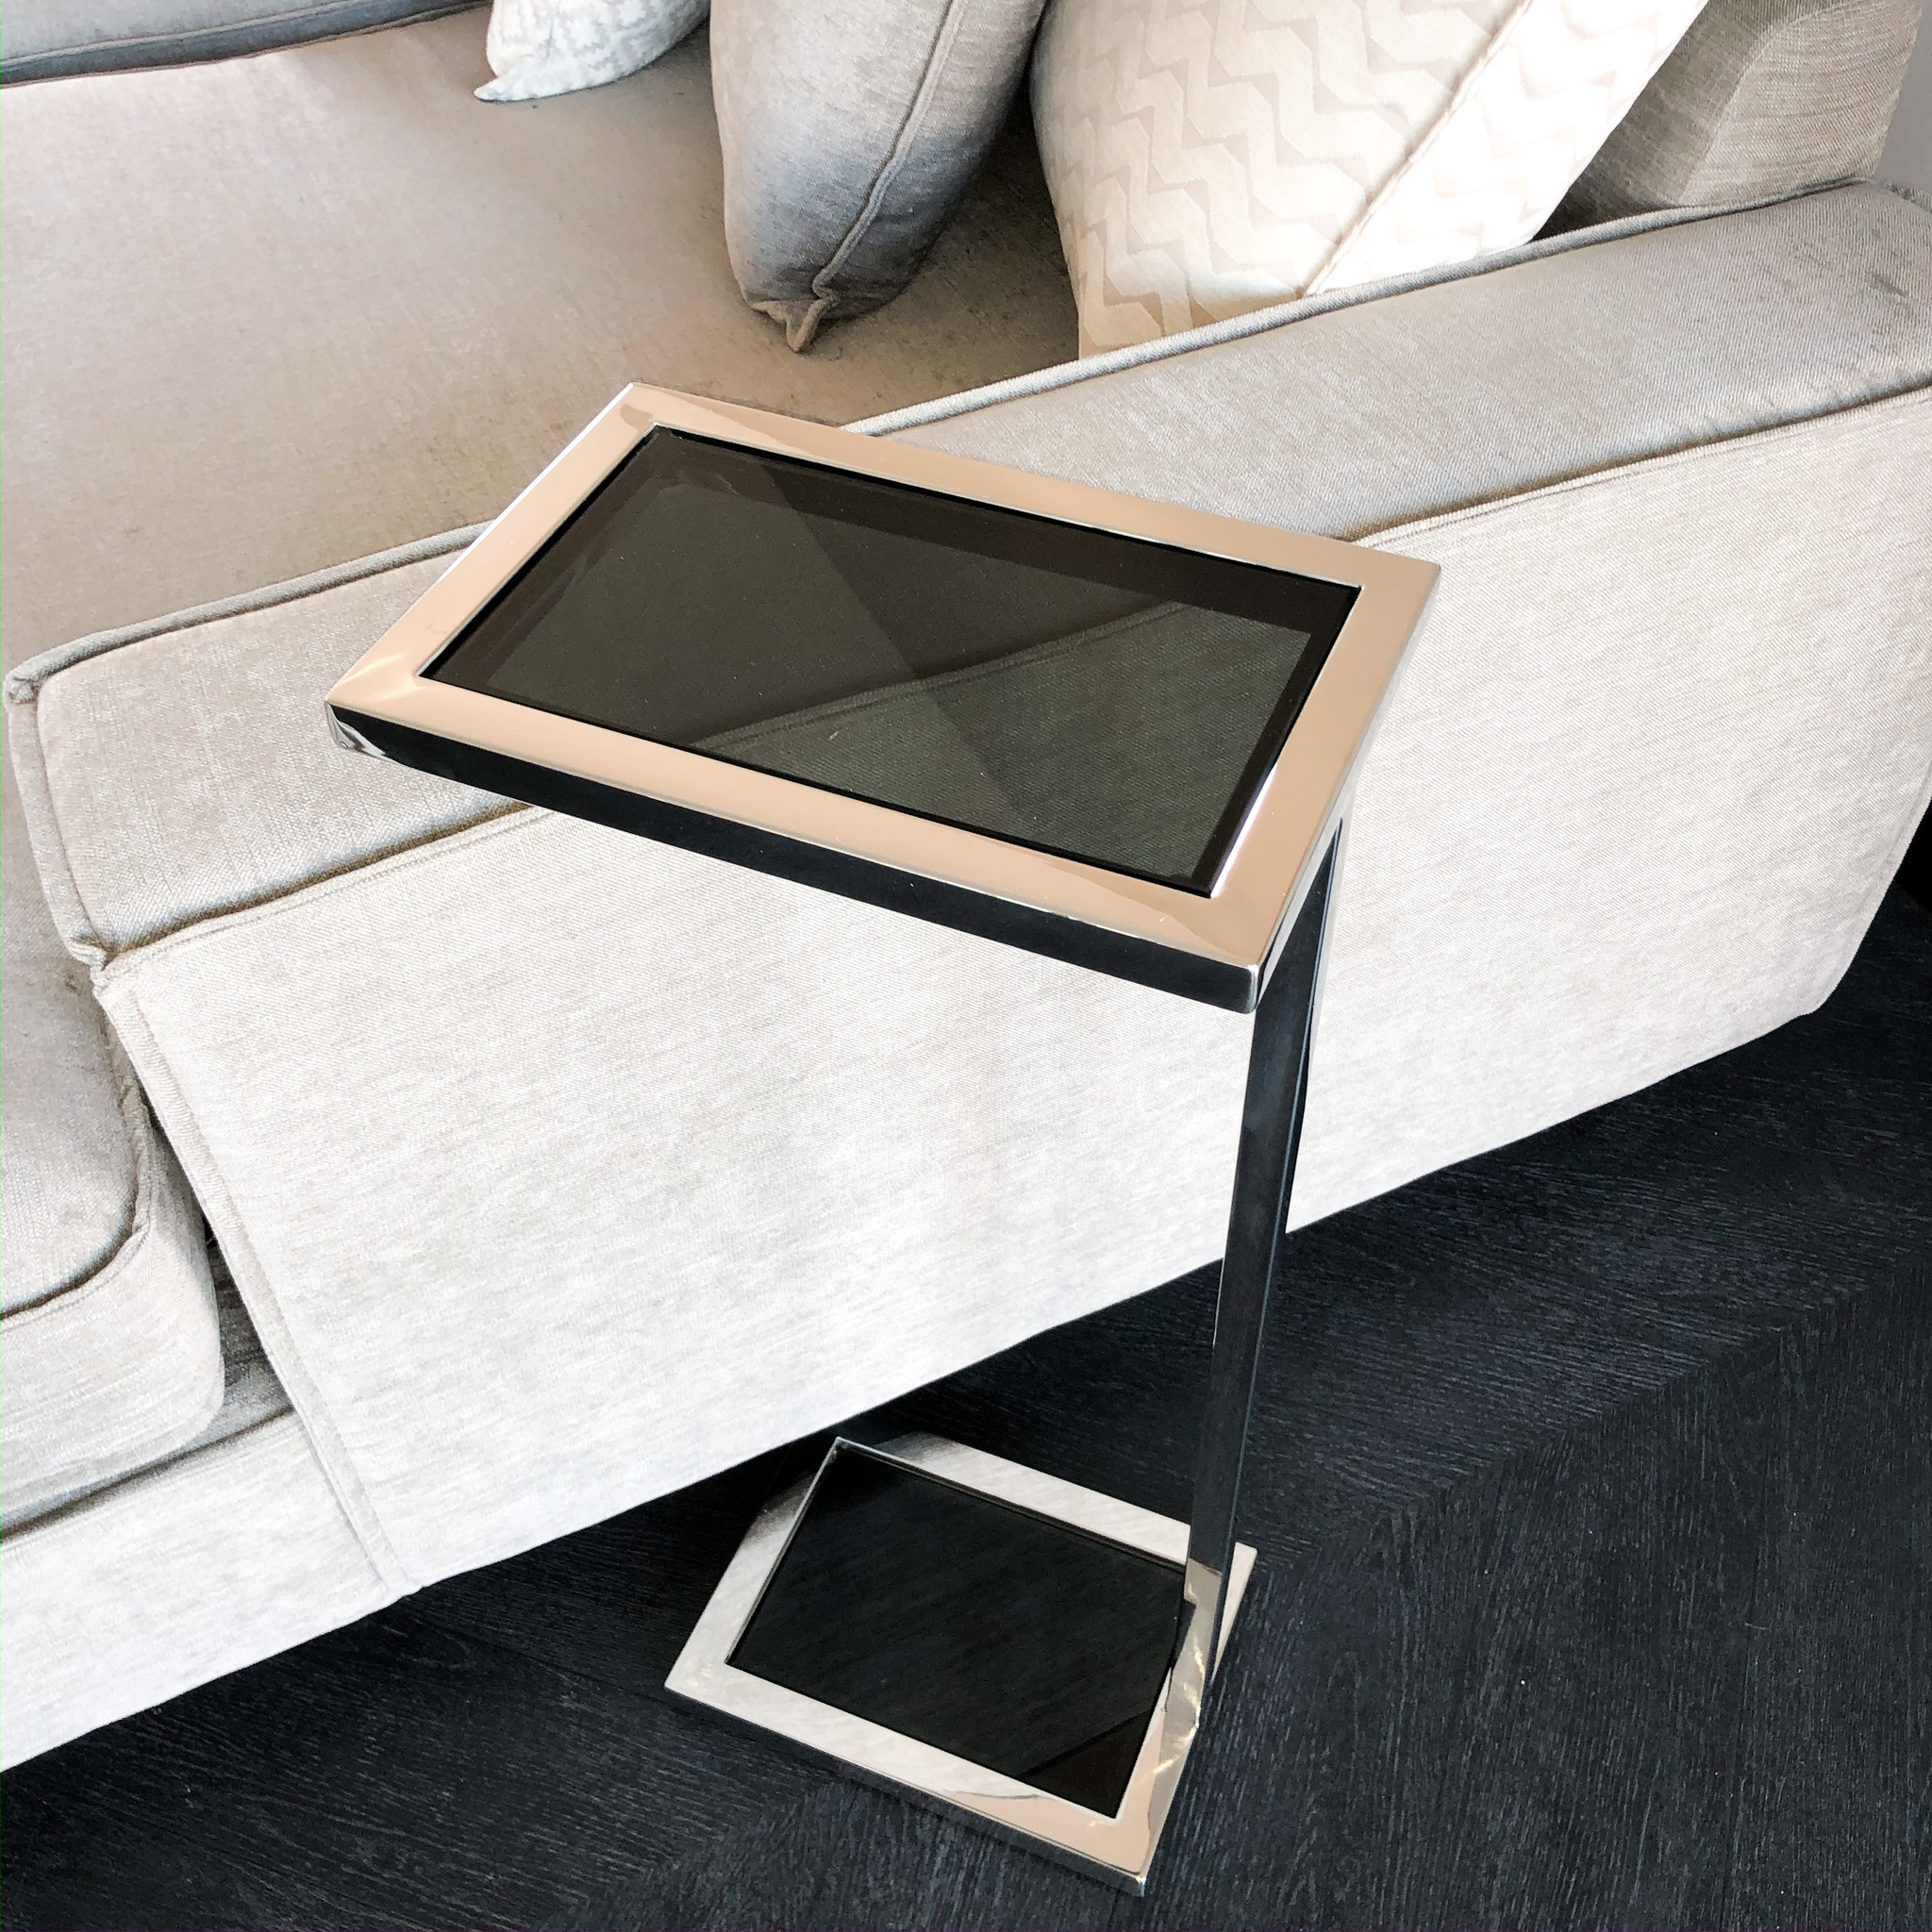 Design Side Table Vicemza Silver-5